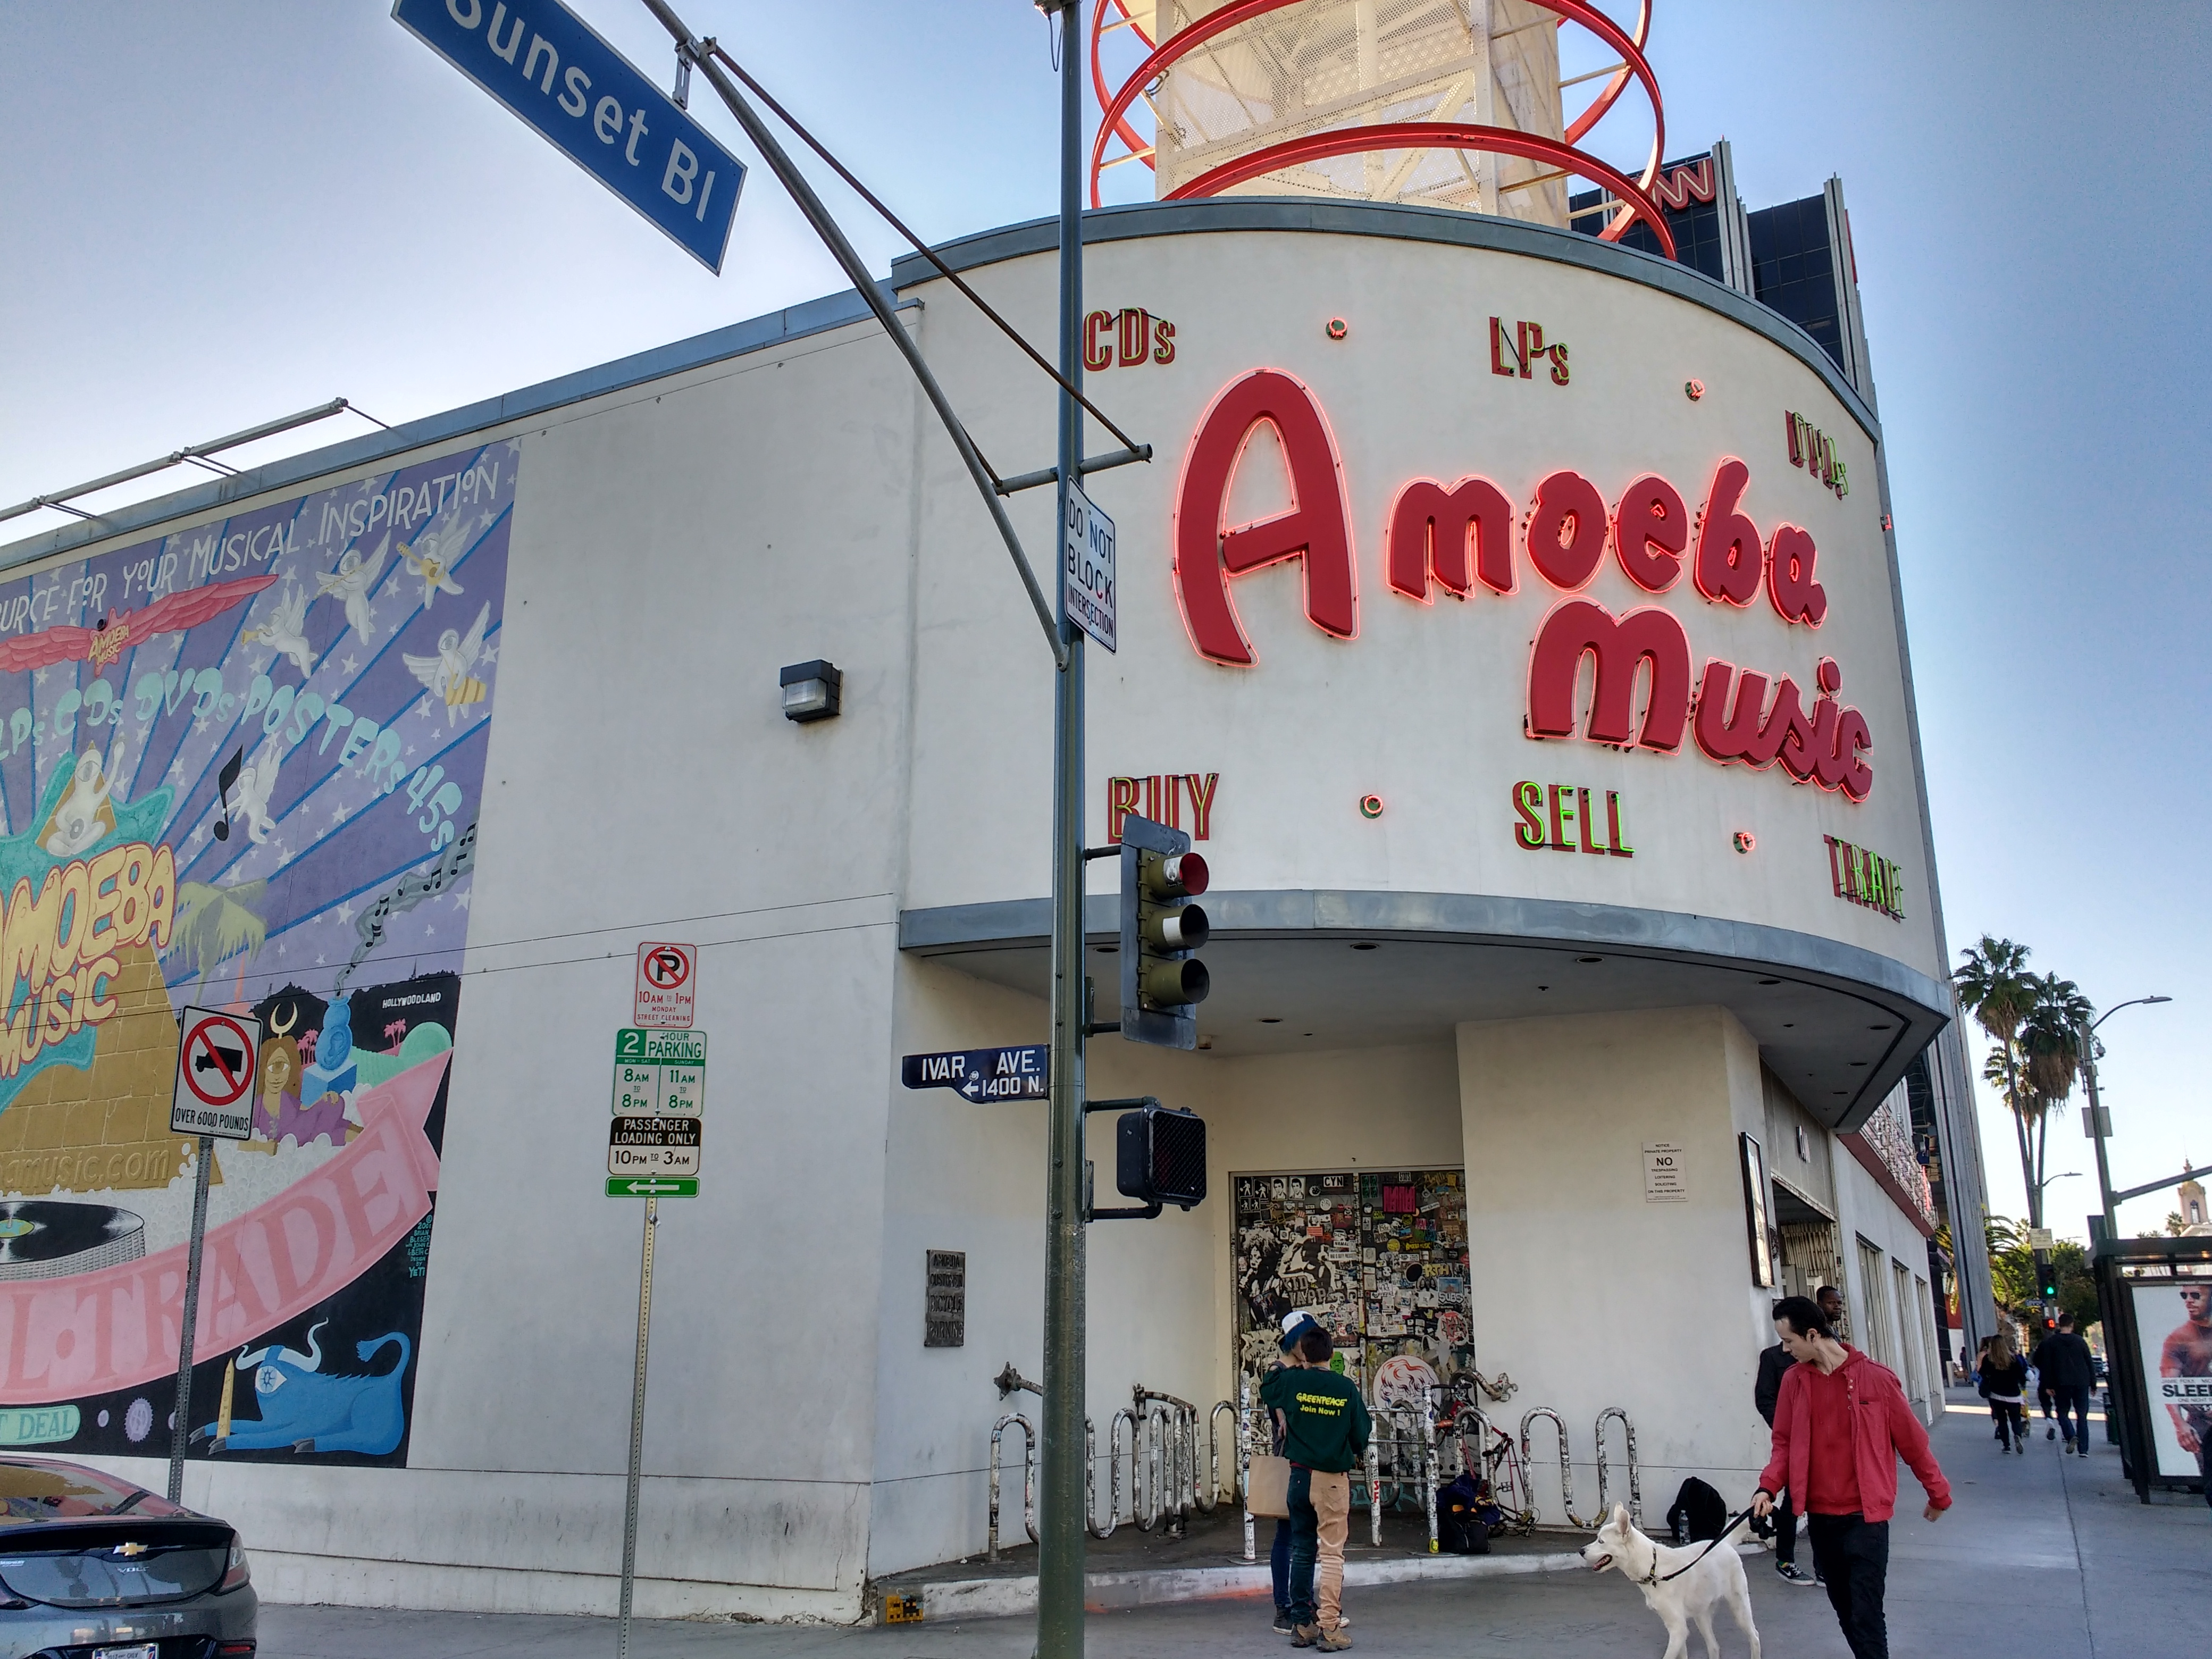 A photo of the exterior of the Ameoba Music building taken from Sunset Boulevard.